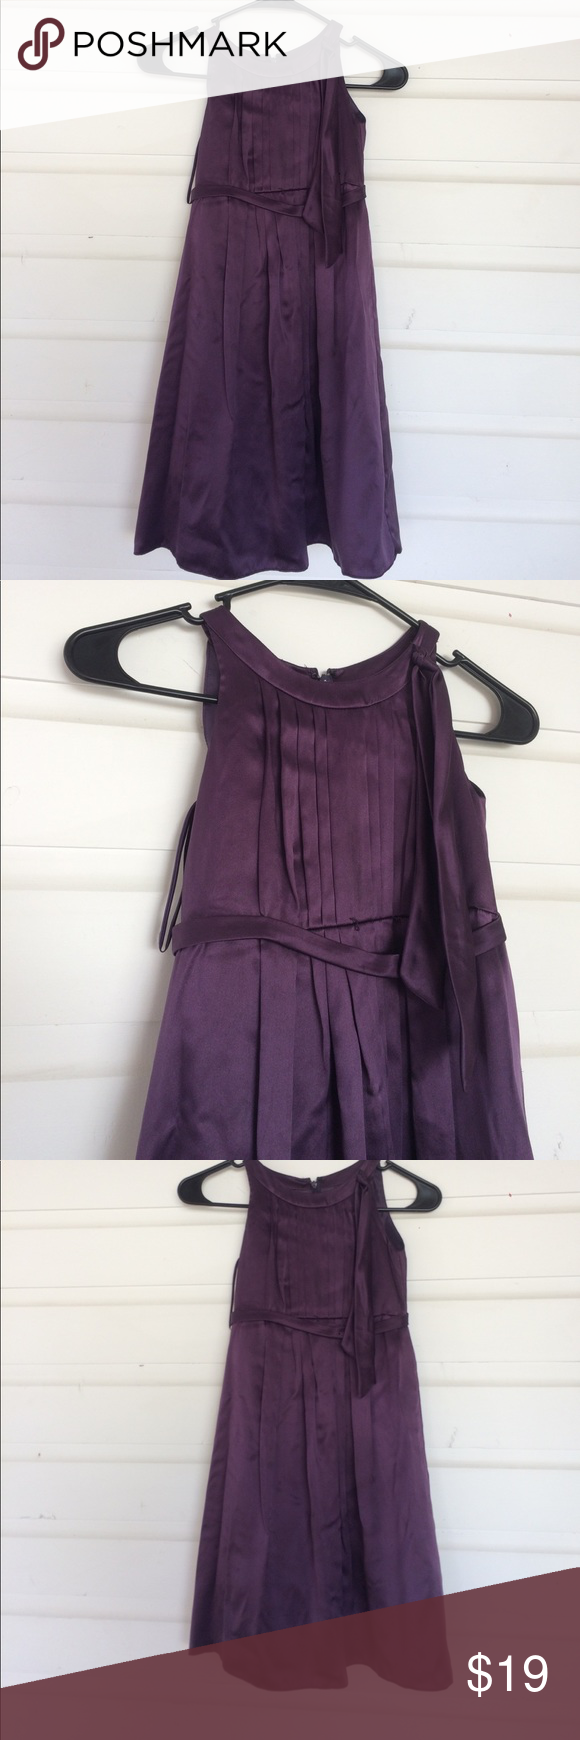 Melissa Sweet Purple Flower Girl Holiday Dress This dress would be perfect for a laid back wedding or dressy event. No stains. Pulling at belt, needs an iron. Poly satin, lined. Pleated bodice. Great for dress up or any party where she wants to be pretty but still be a kid. Size 7. Offers always warmly received. Melissa Sweet Dresses Formal